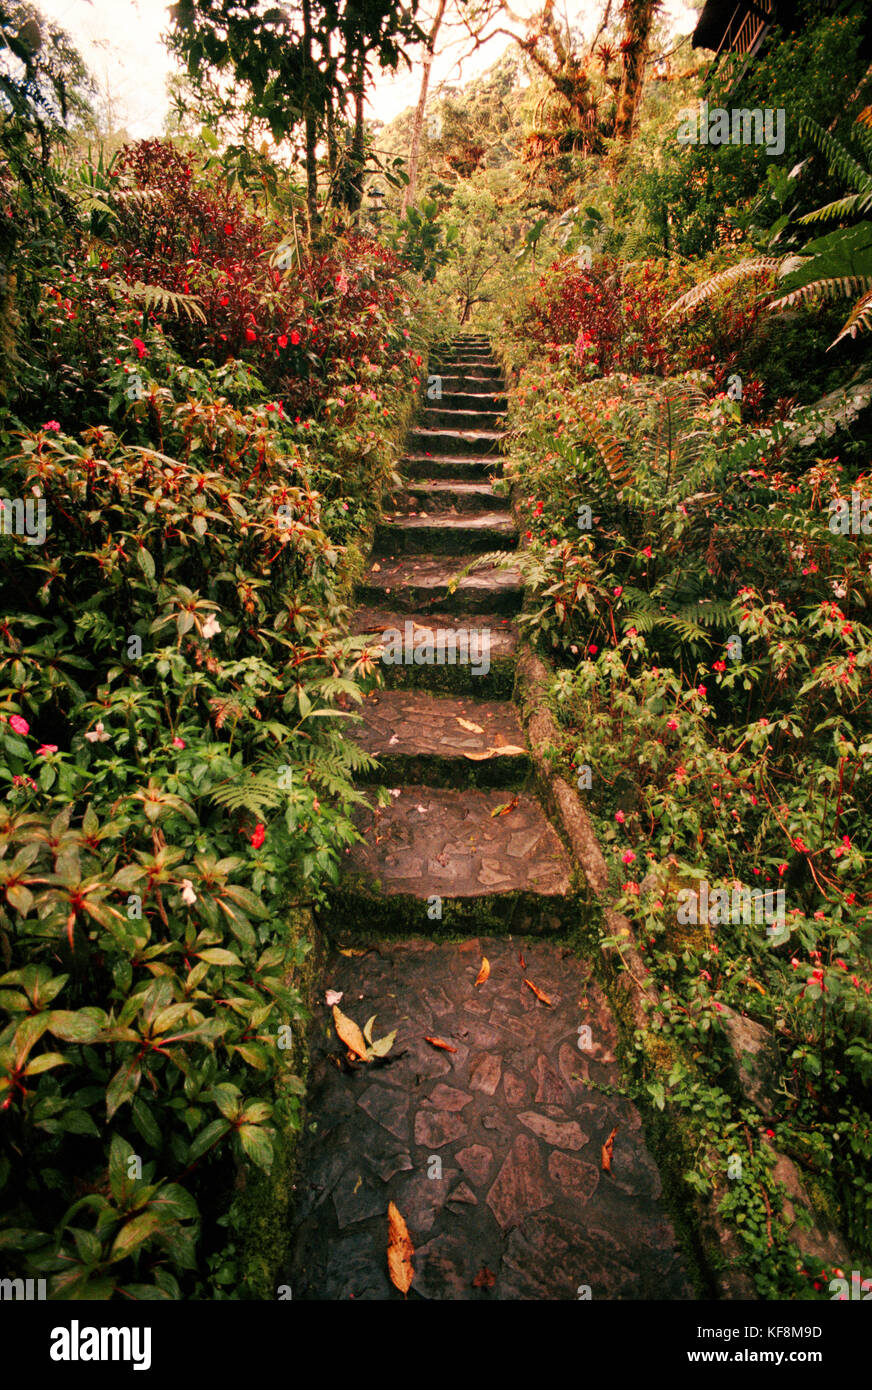 PANAMA, David, Guadalupe, Los Quetzales Lodge, a path leading to a Swiss style chalet in the cloud forest, Volcan - Stock Image